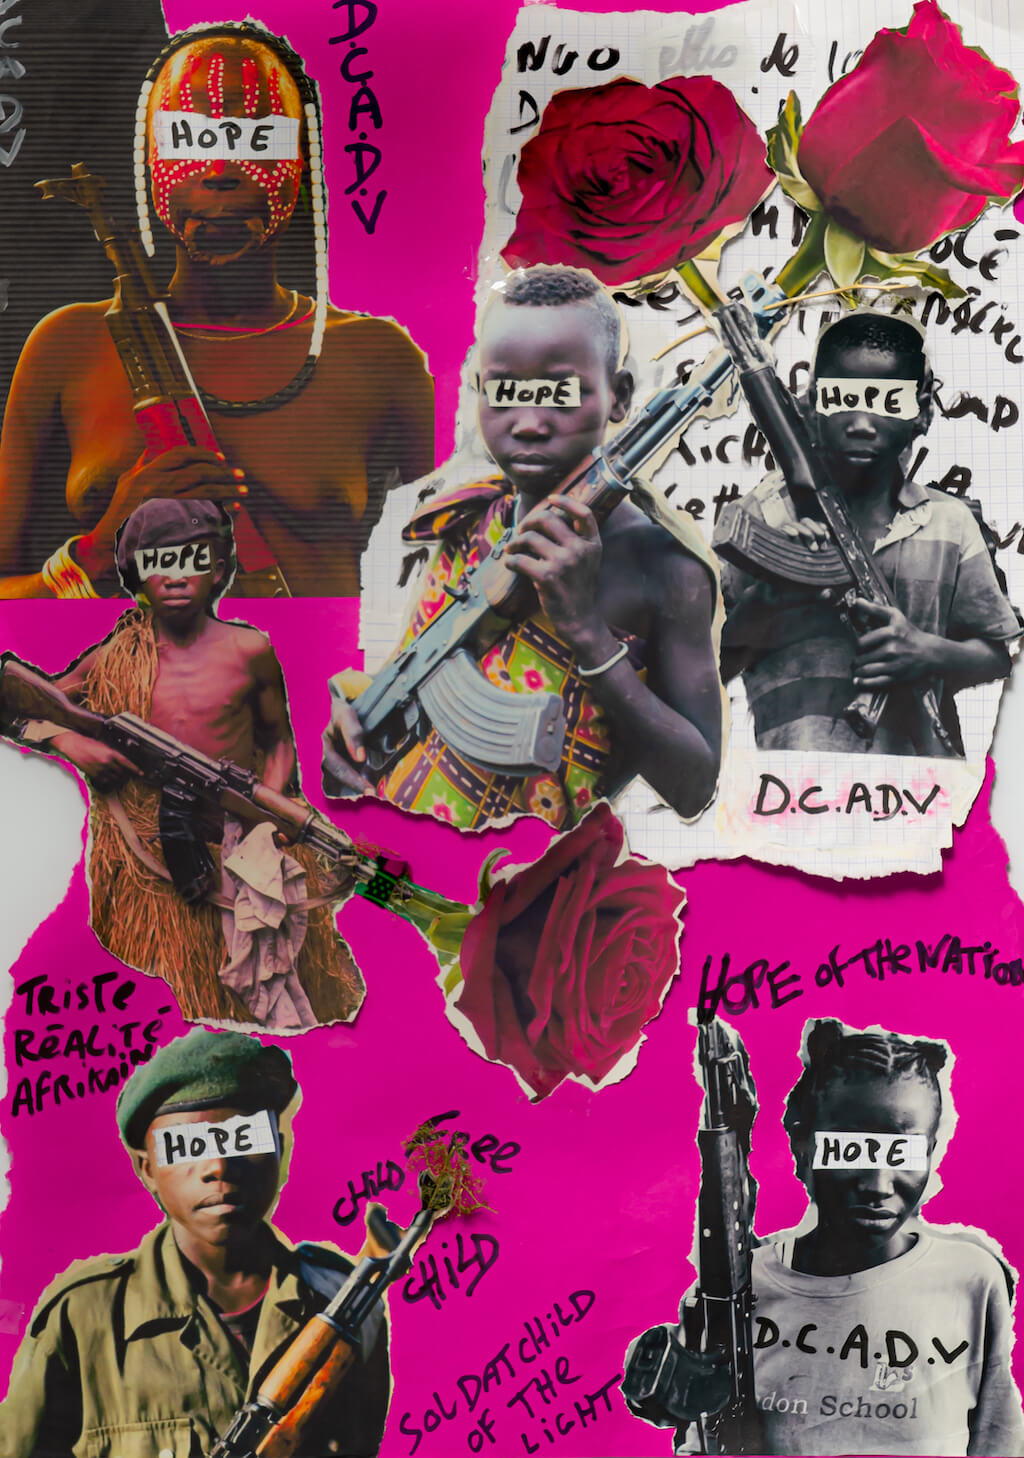 Exocé Kasongo, Soldier Child, print on demand, 2021